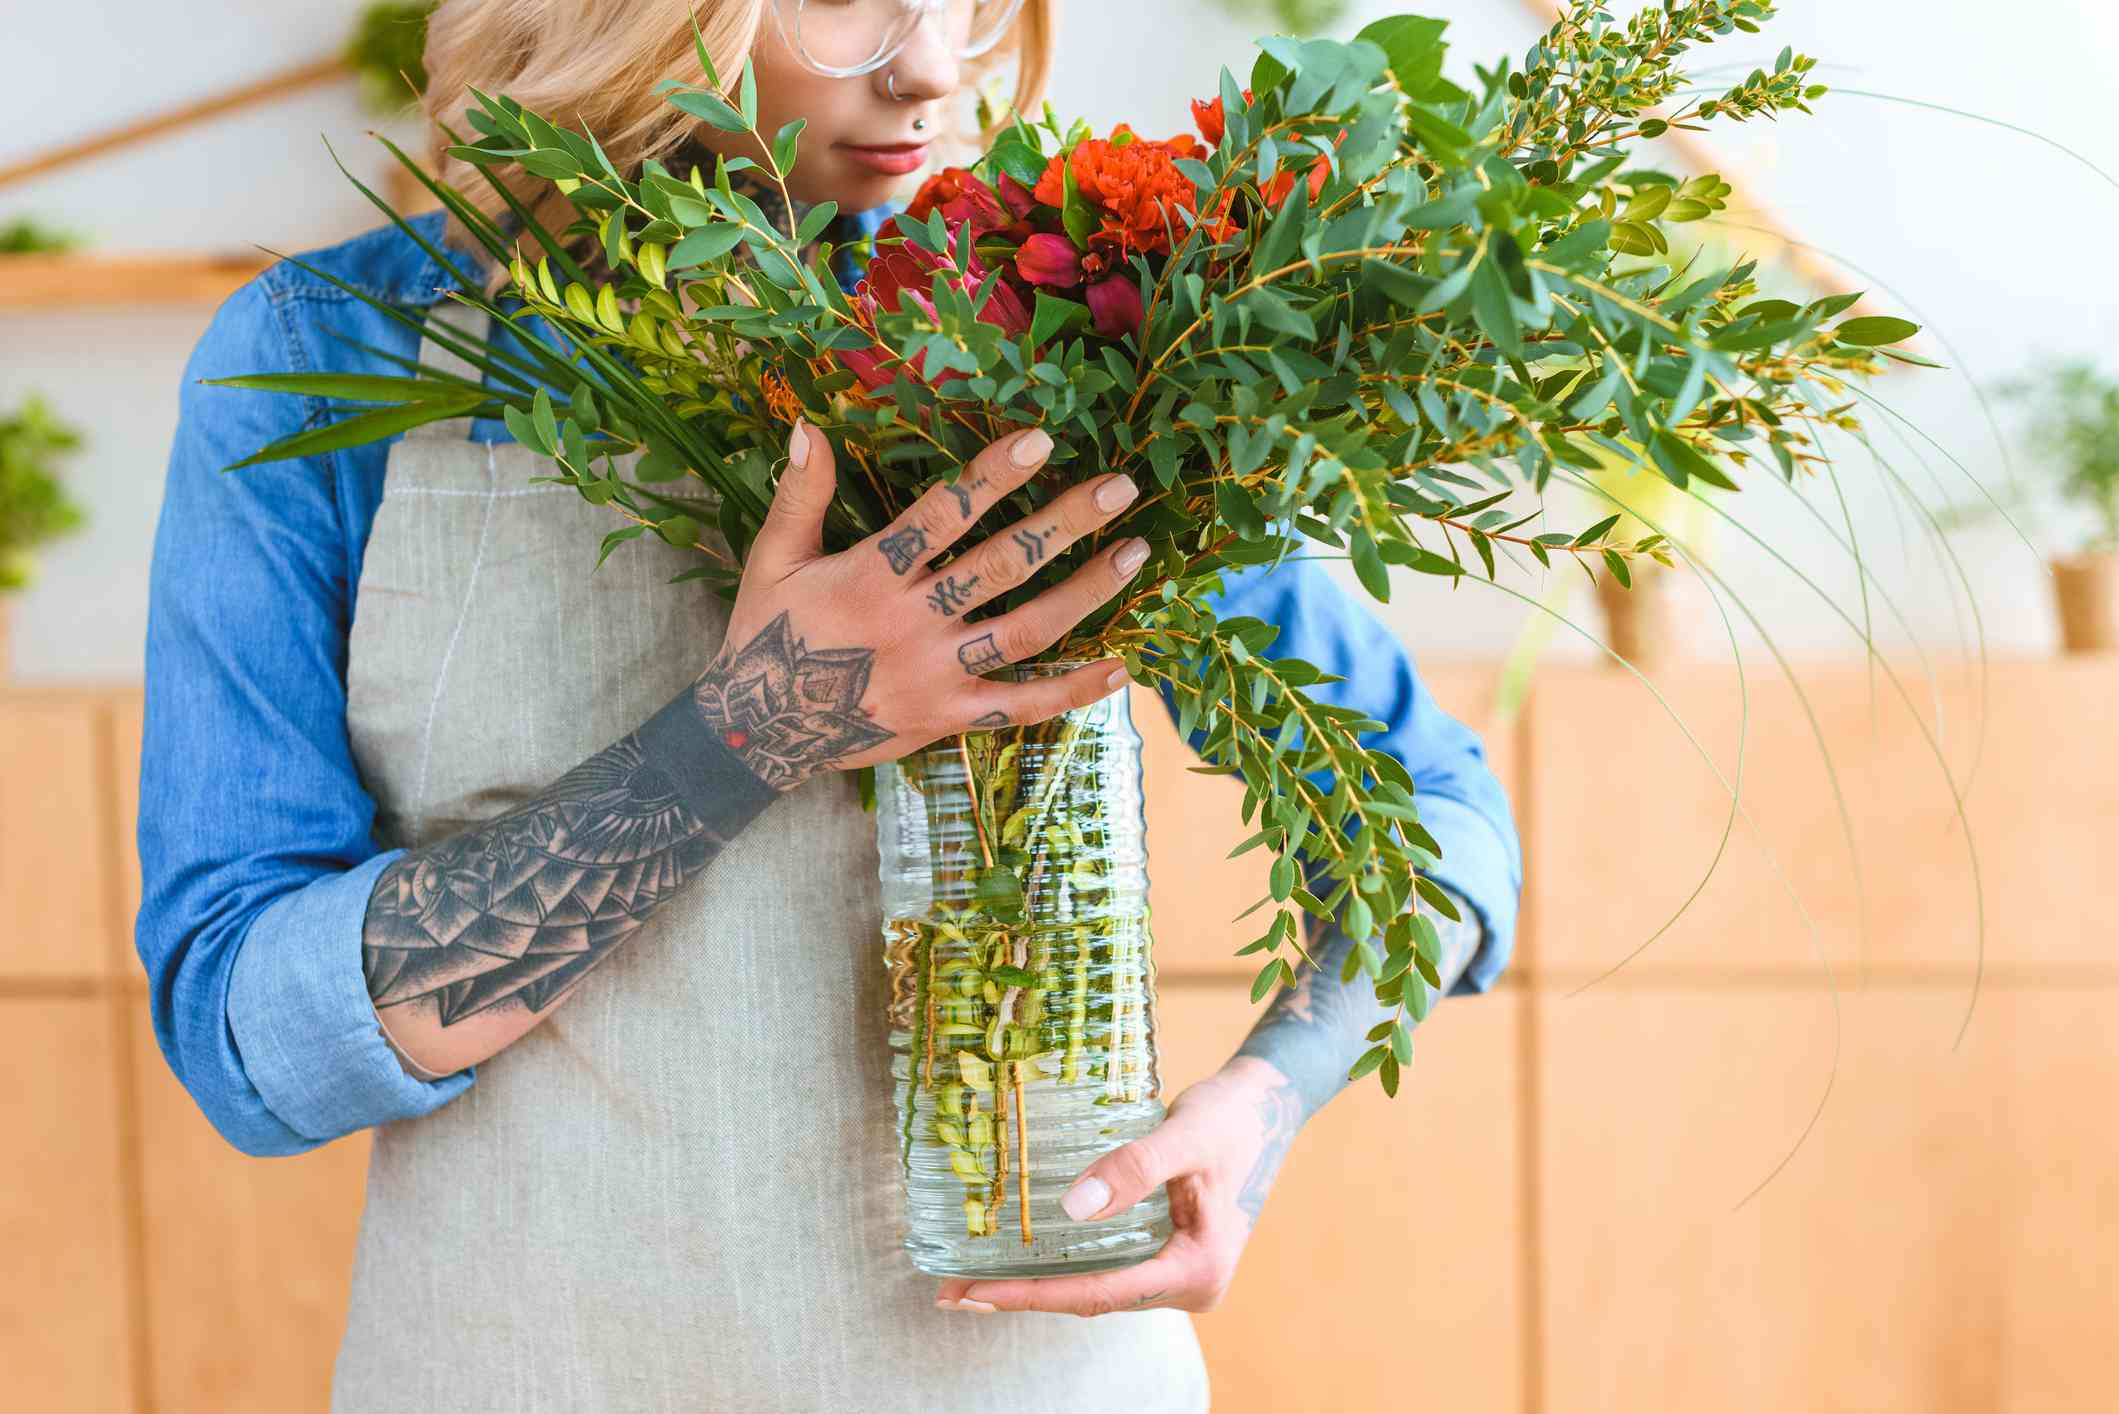 tattooed woman holding a vase of cut flowers